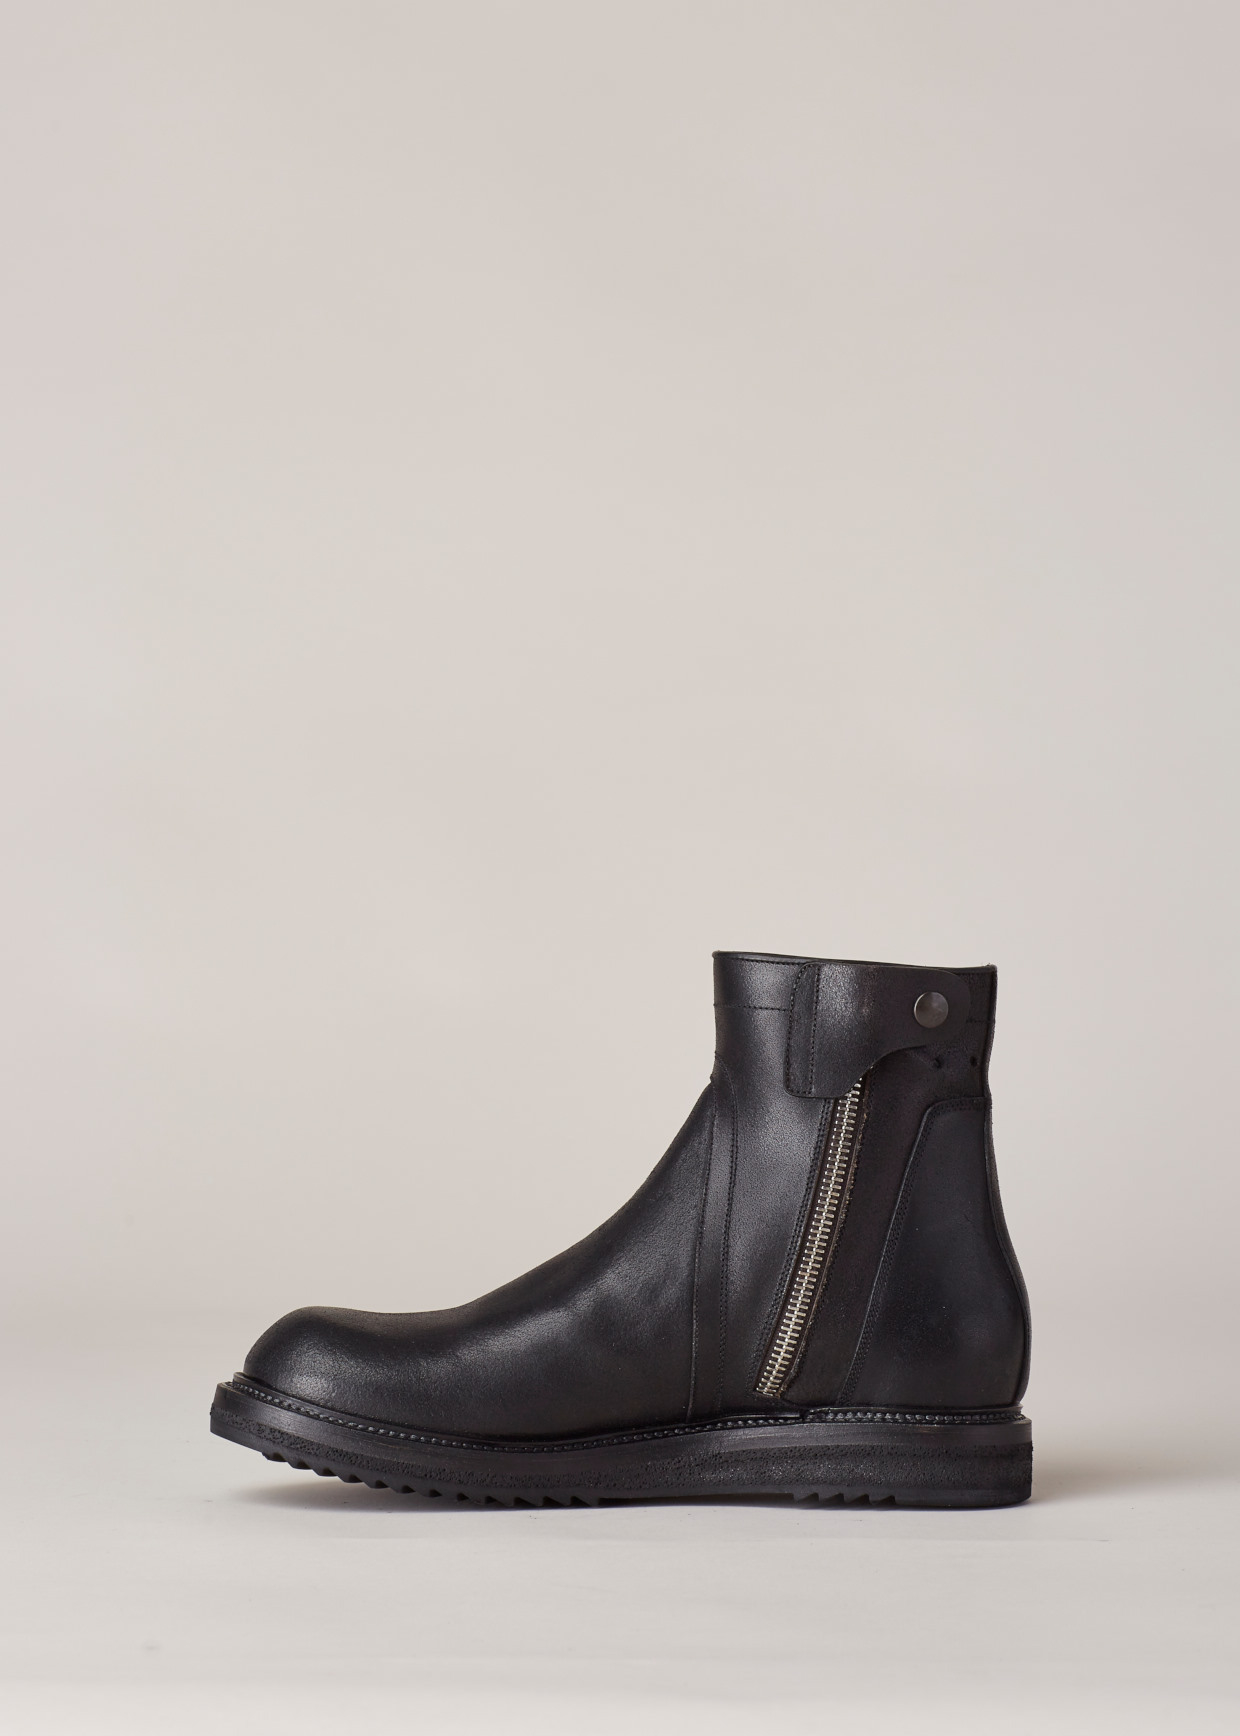 Rick Owens Round-Toe Leather Ankle Boots free shipping latest GA4PPMzaL